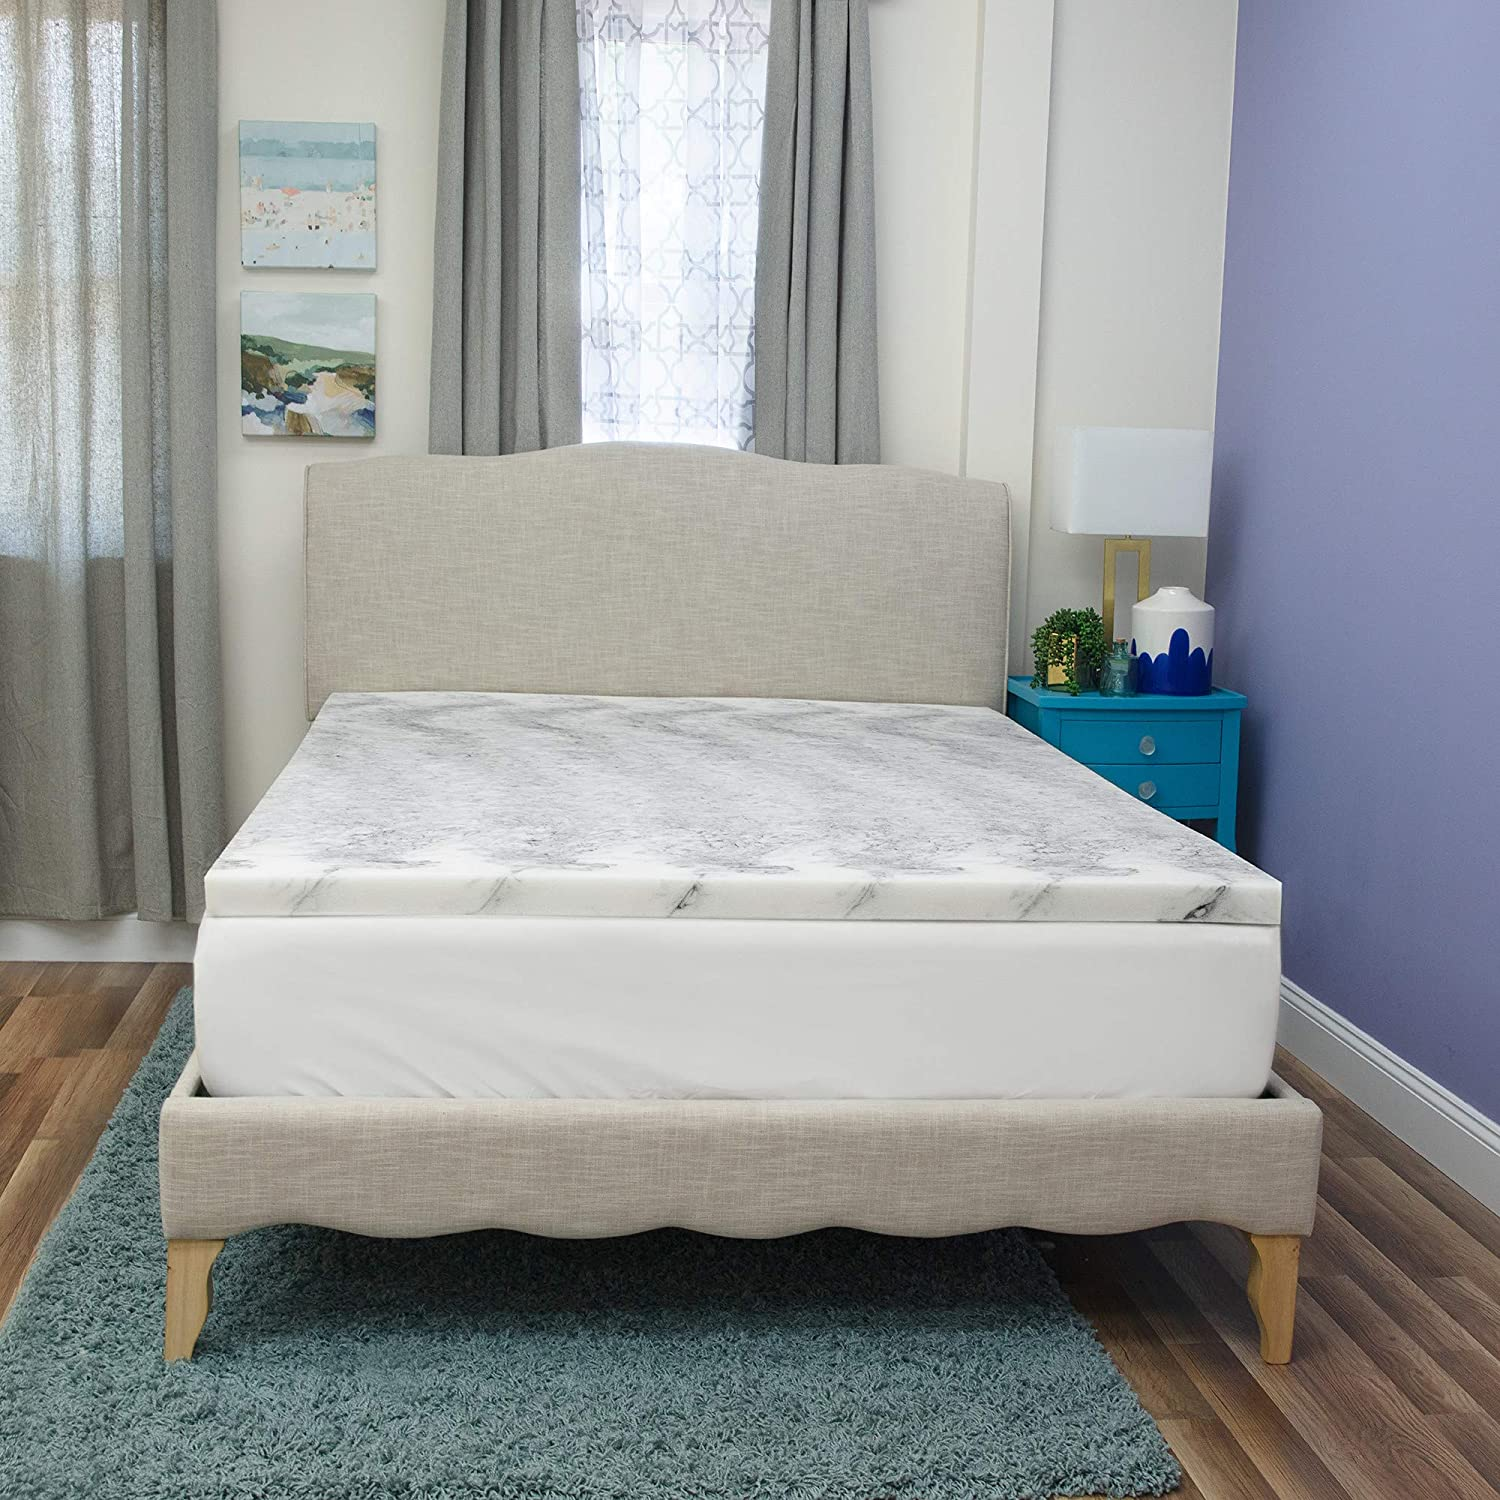 BioPedic Bamboo Charcoal infused Mattress Topper